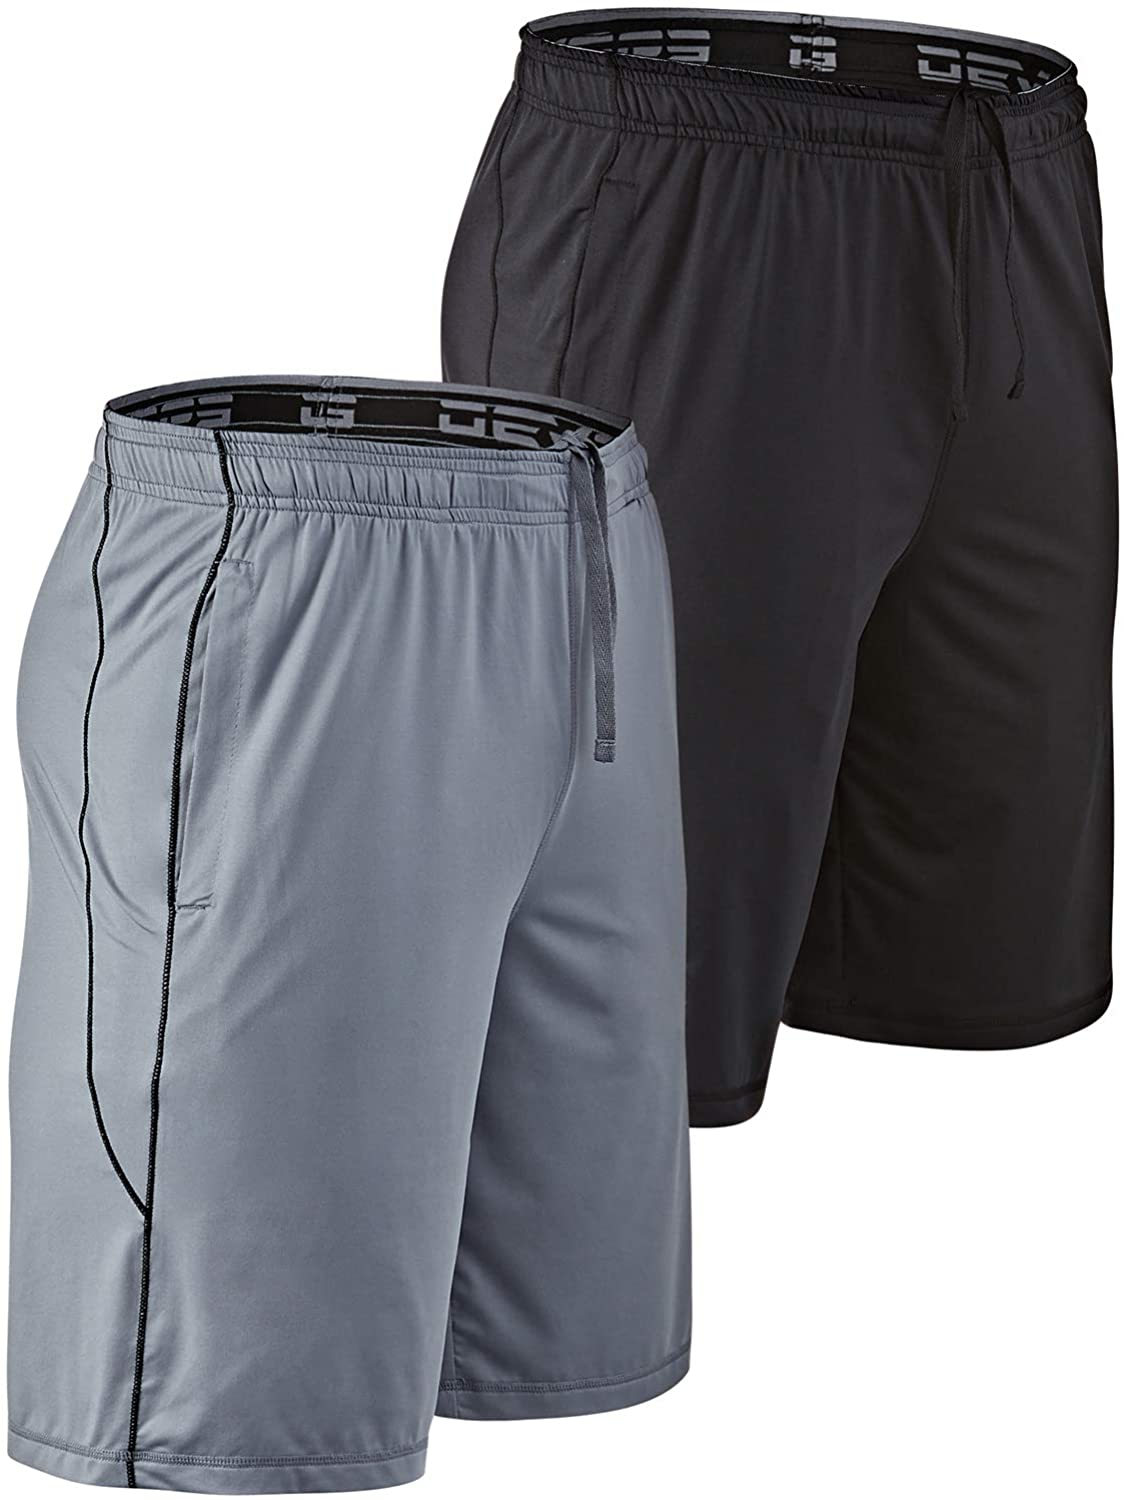 DEVOPS Men's 10-inch Athletic Workout Basketball Shorts with Pockets (Pack of 2)